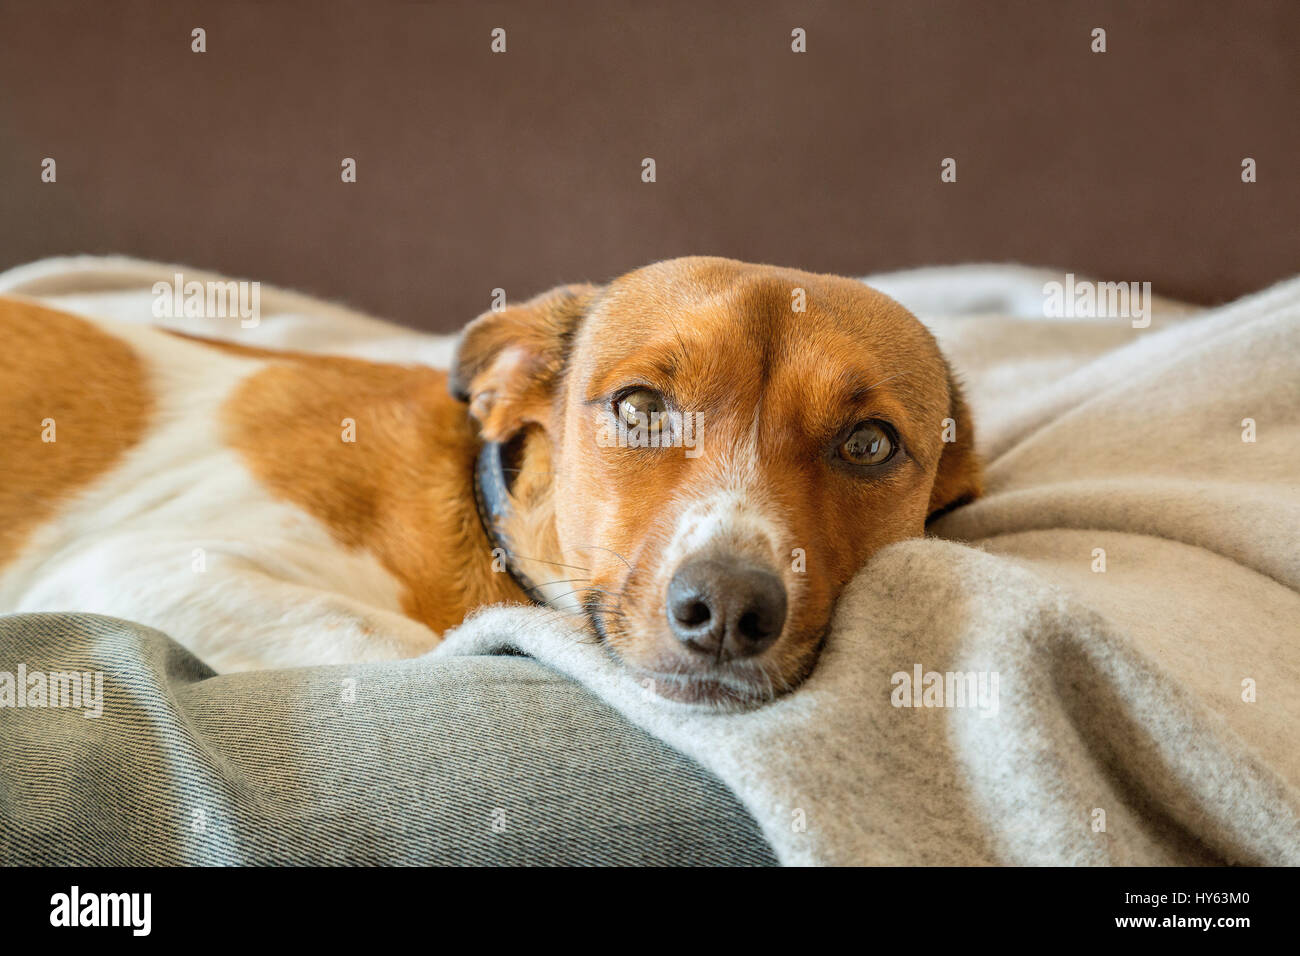 Relaxing mixed breed dog on a blanket - Stock Image